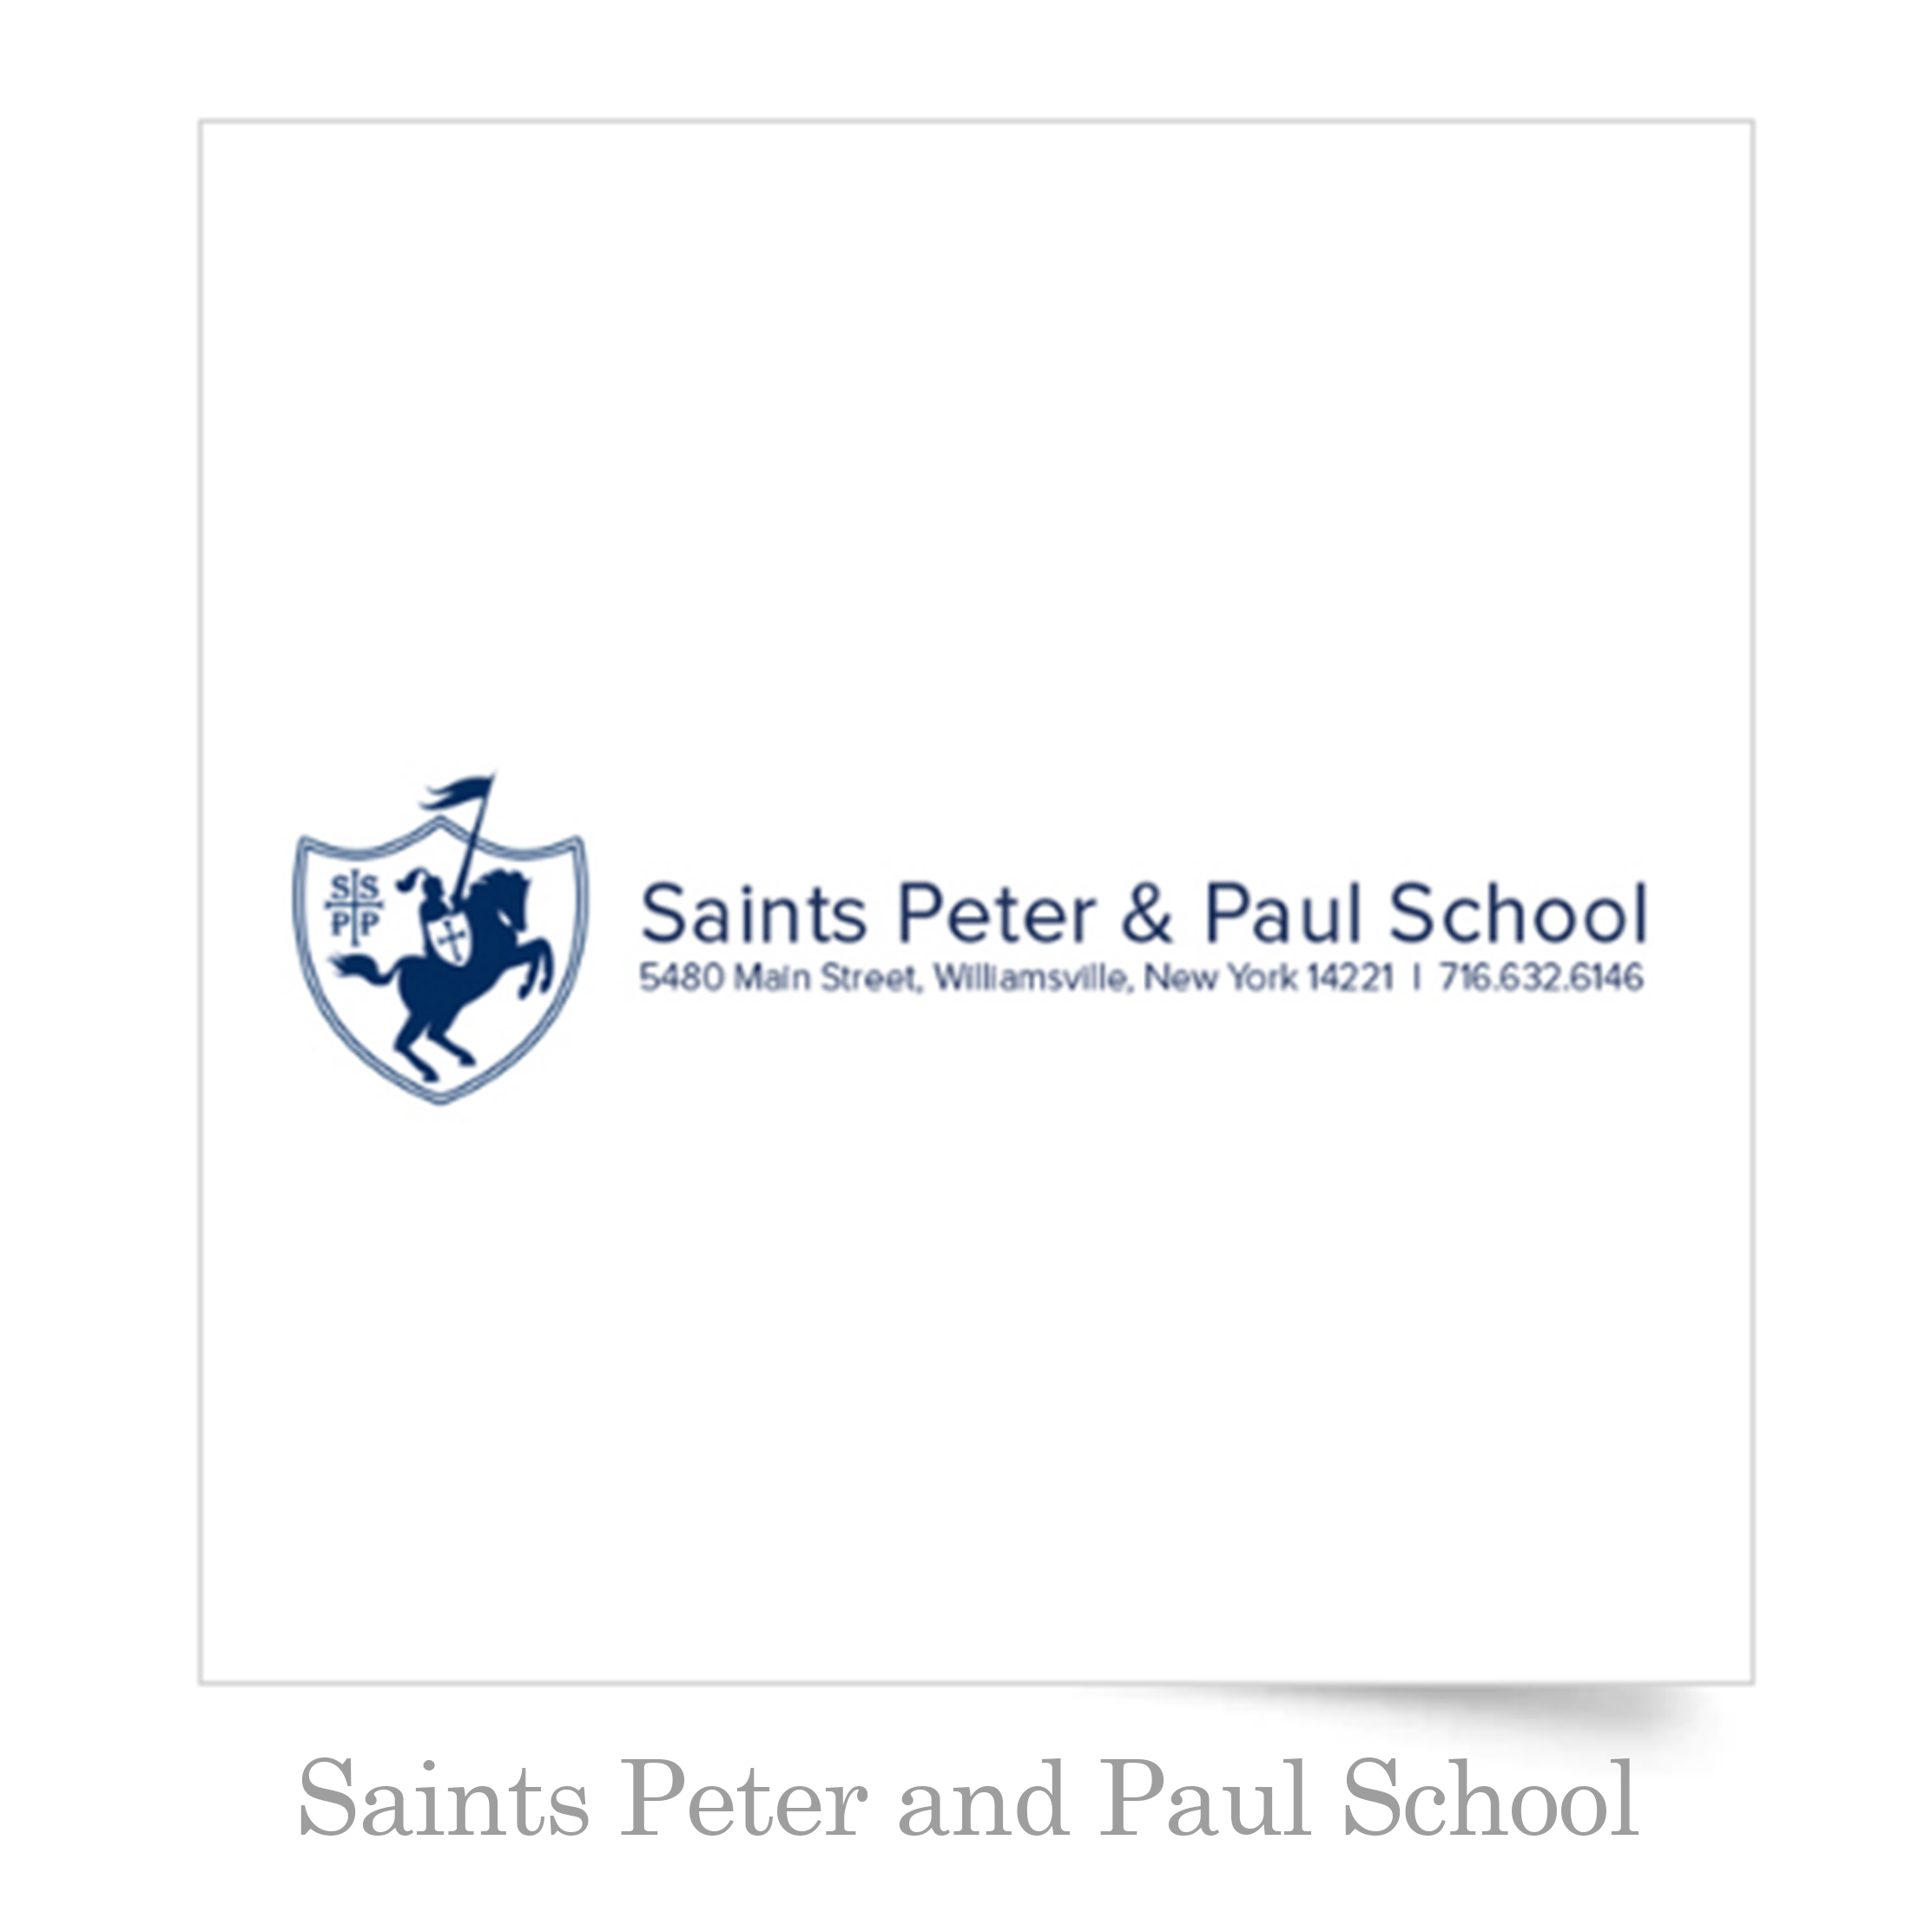 saints peter